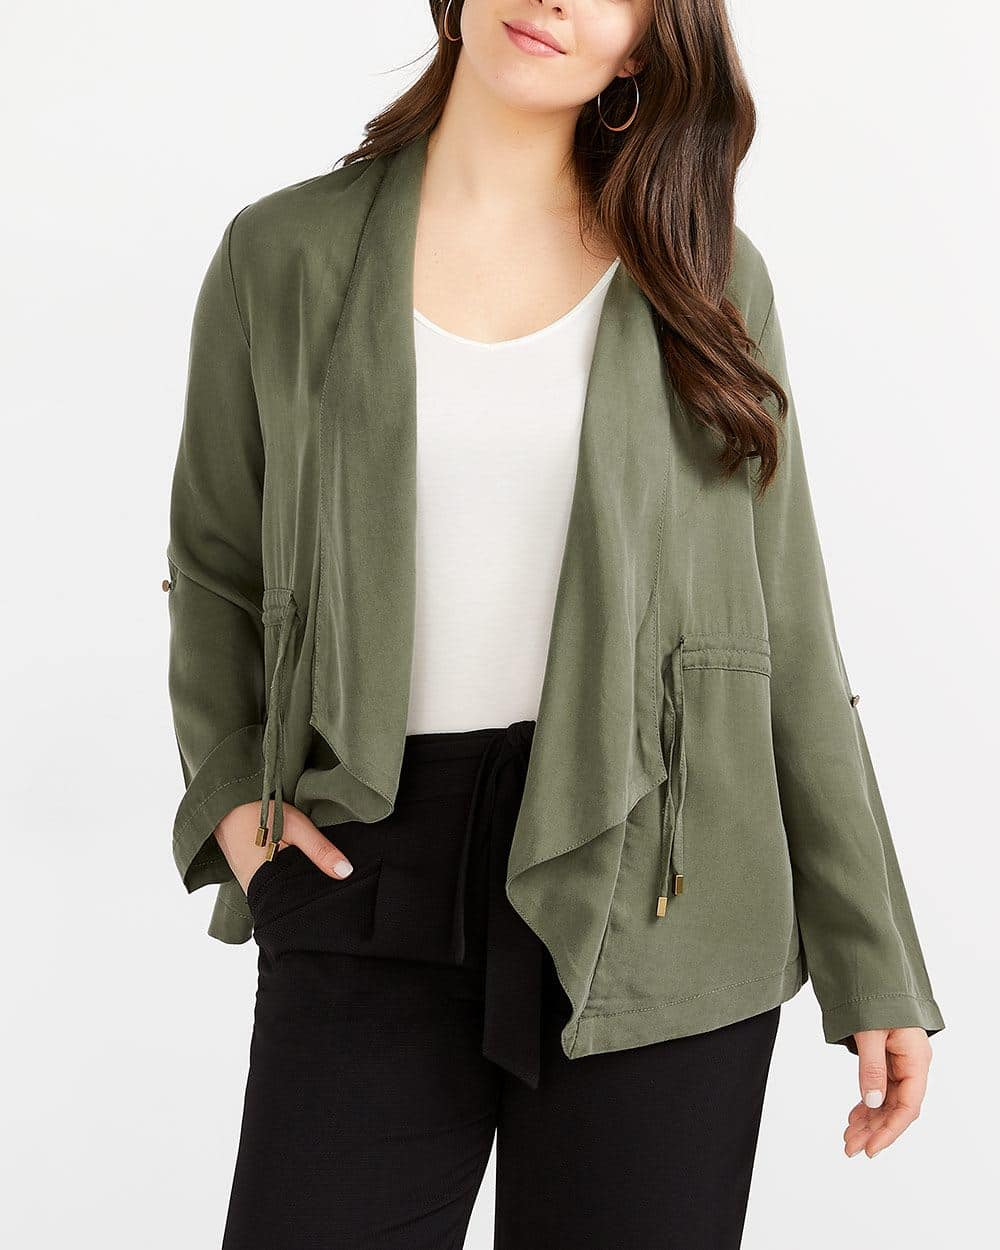 Adjustable Sleeve Open Blazer